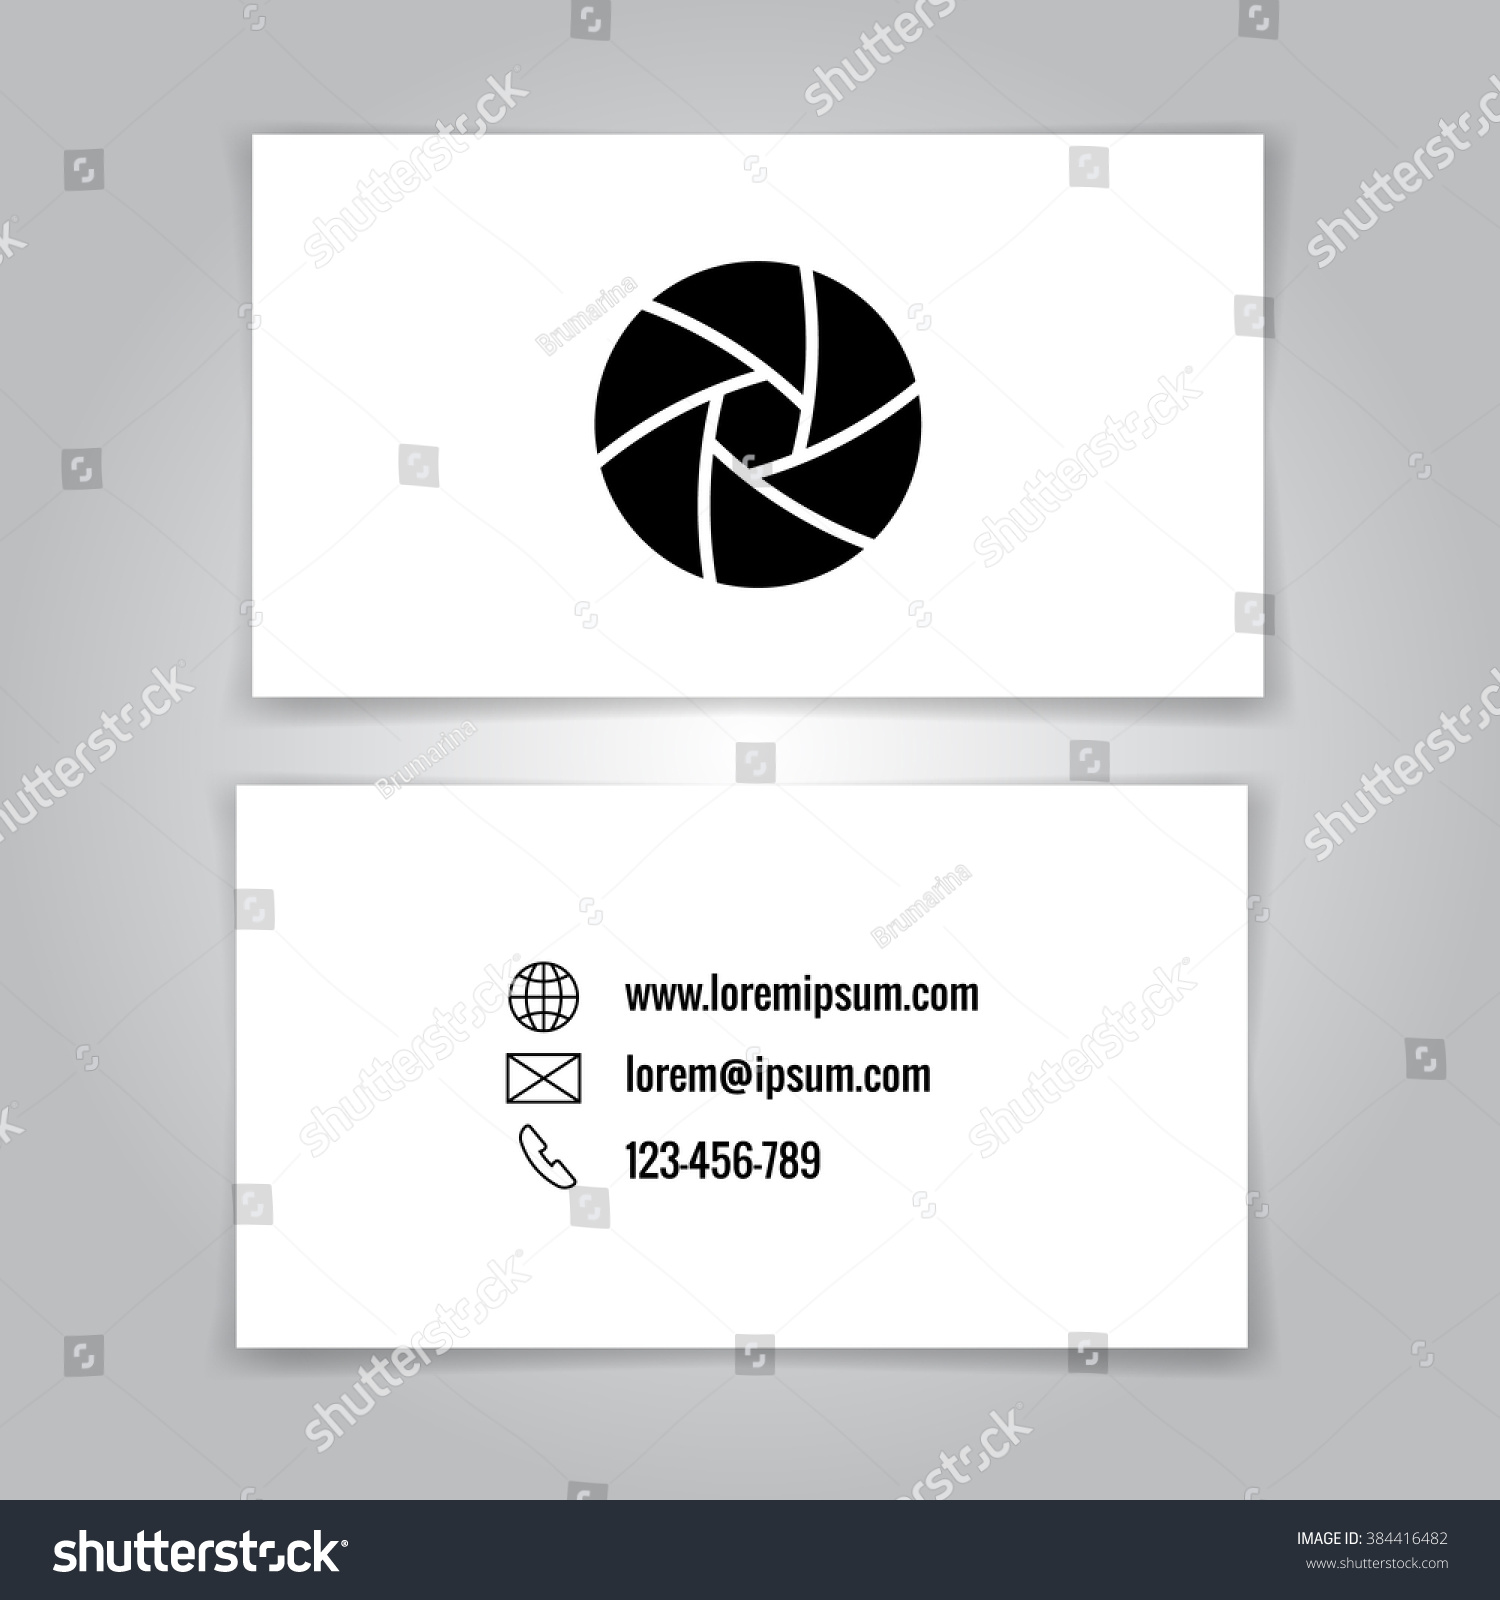 Modern Simple Business Card Template Logo Stock Illustration ...